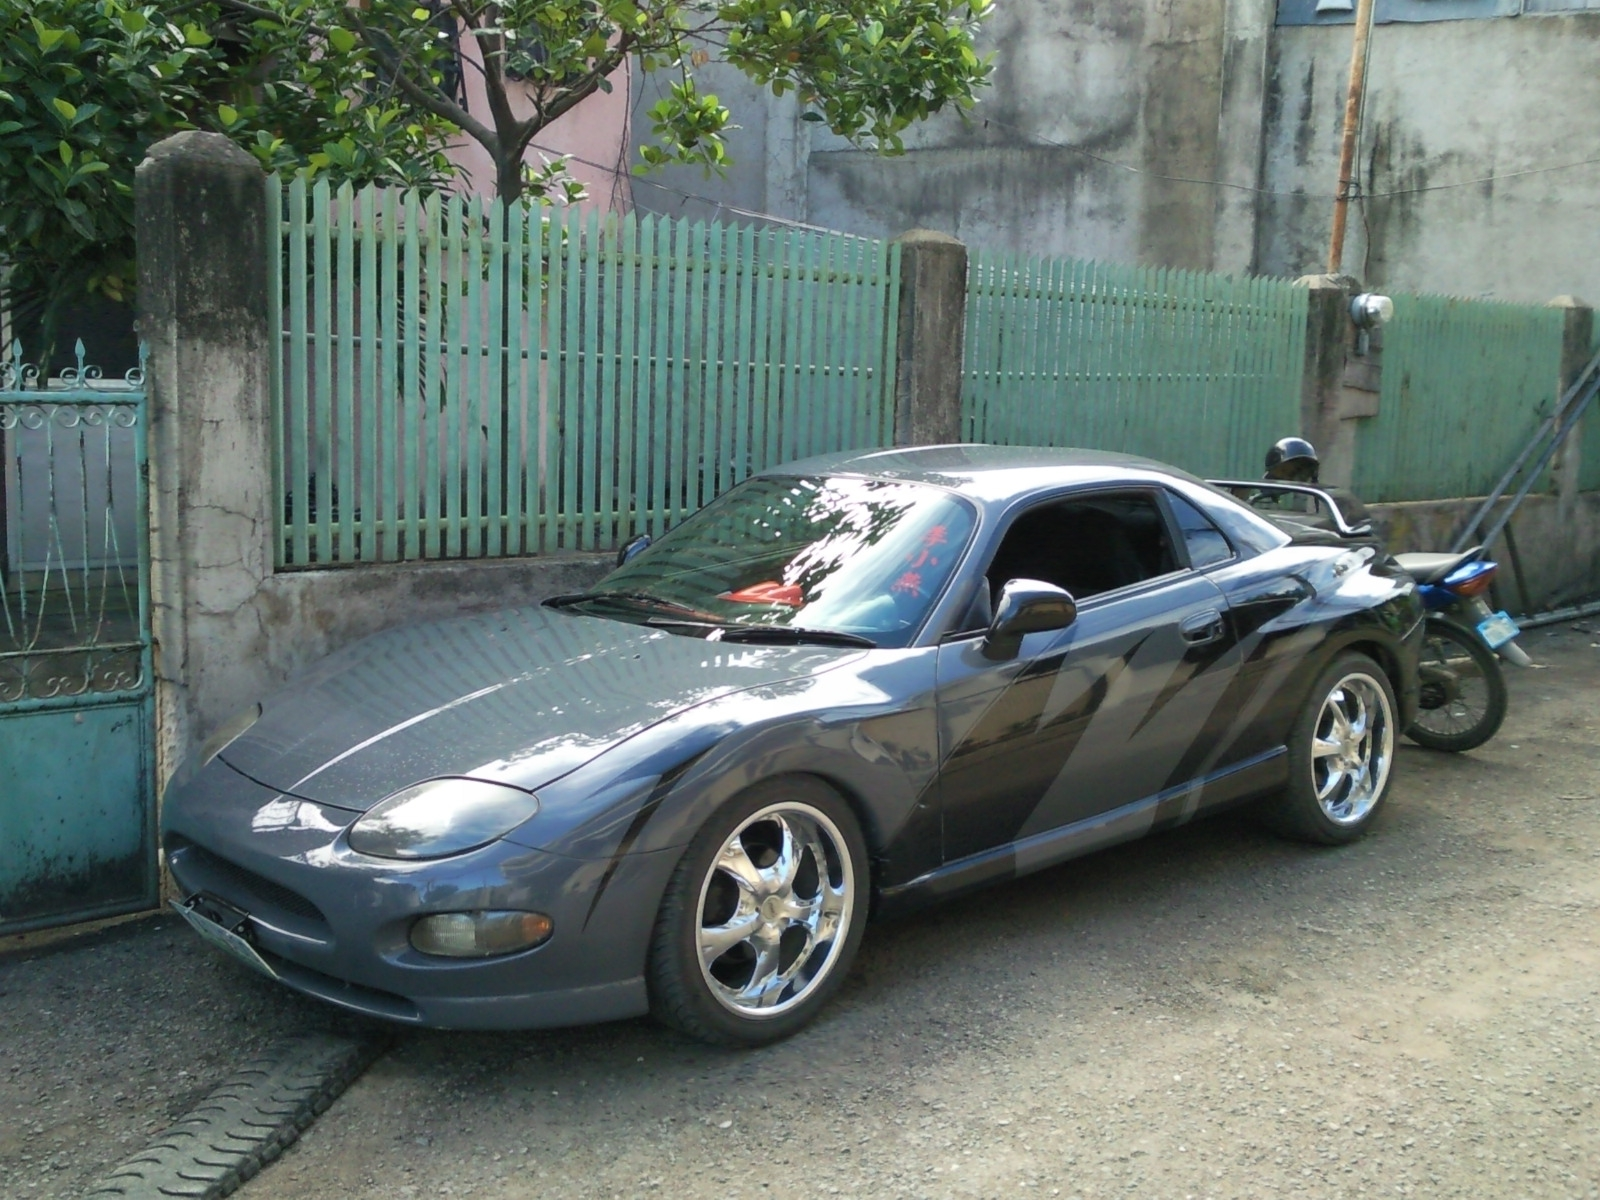 team_rebel25 2000 Mitsubishi FTO 12746554